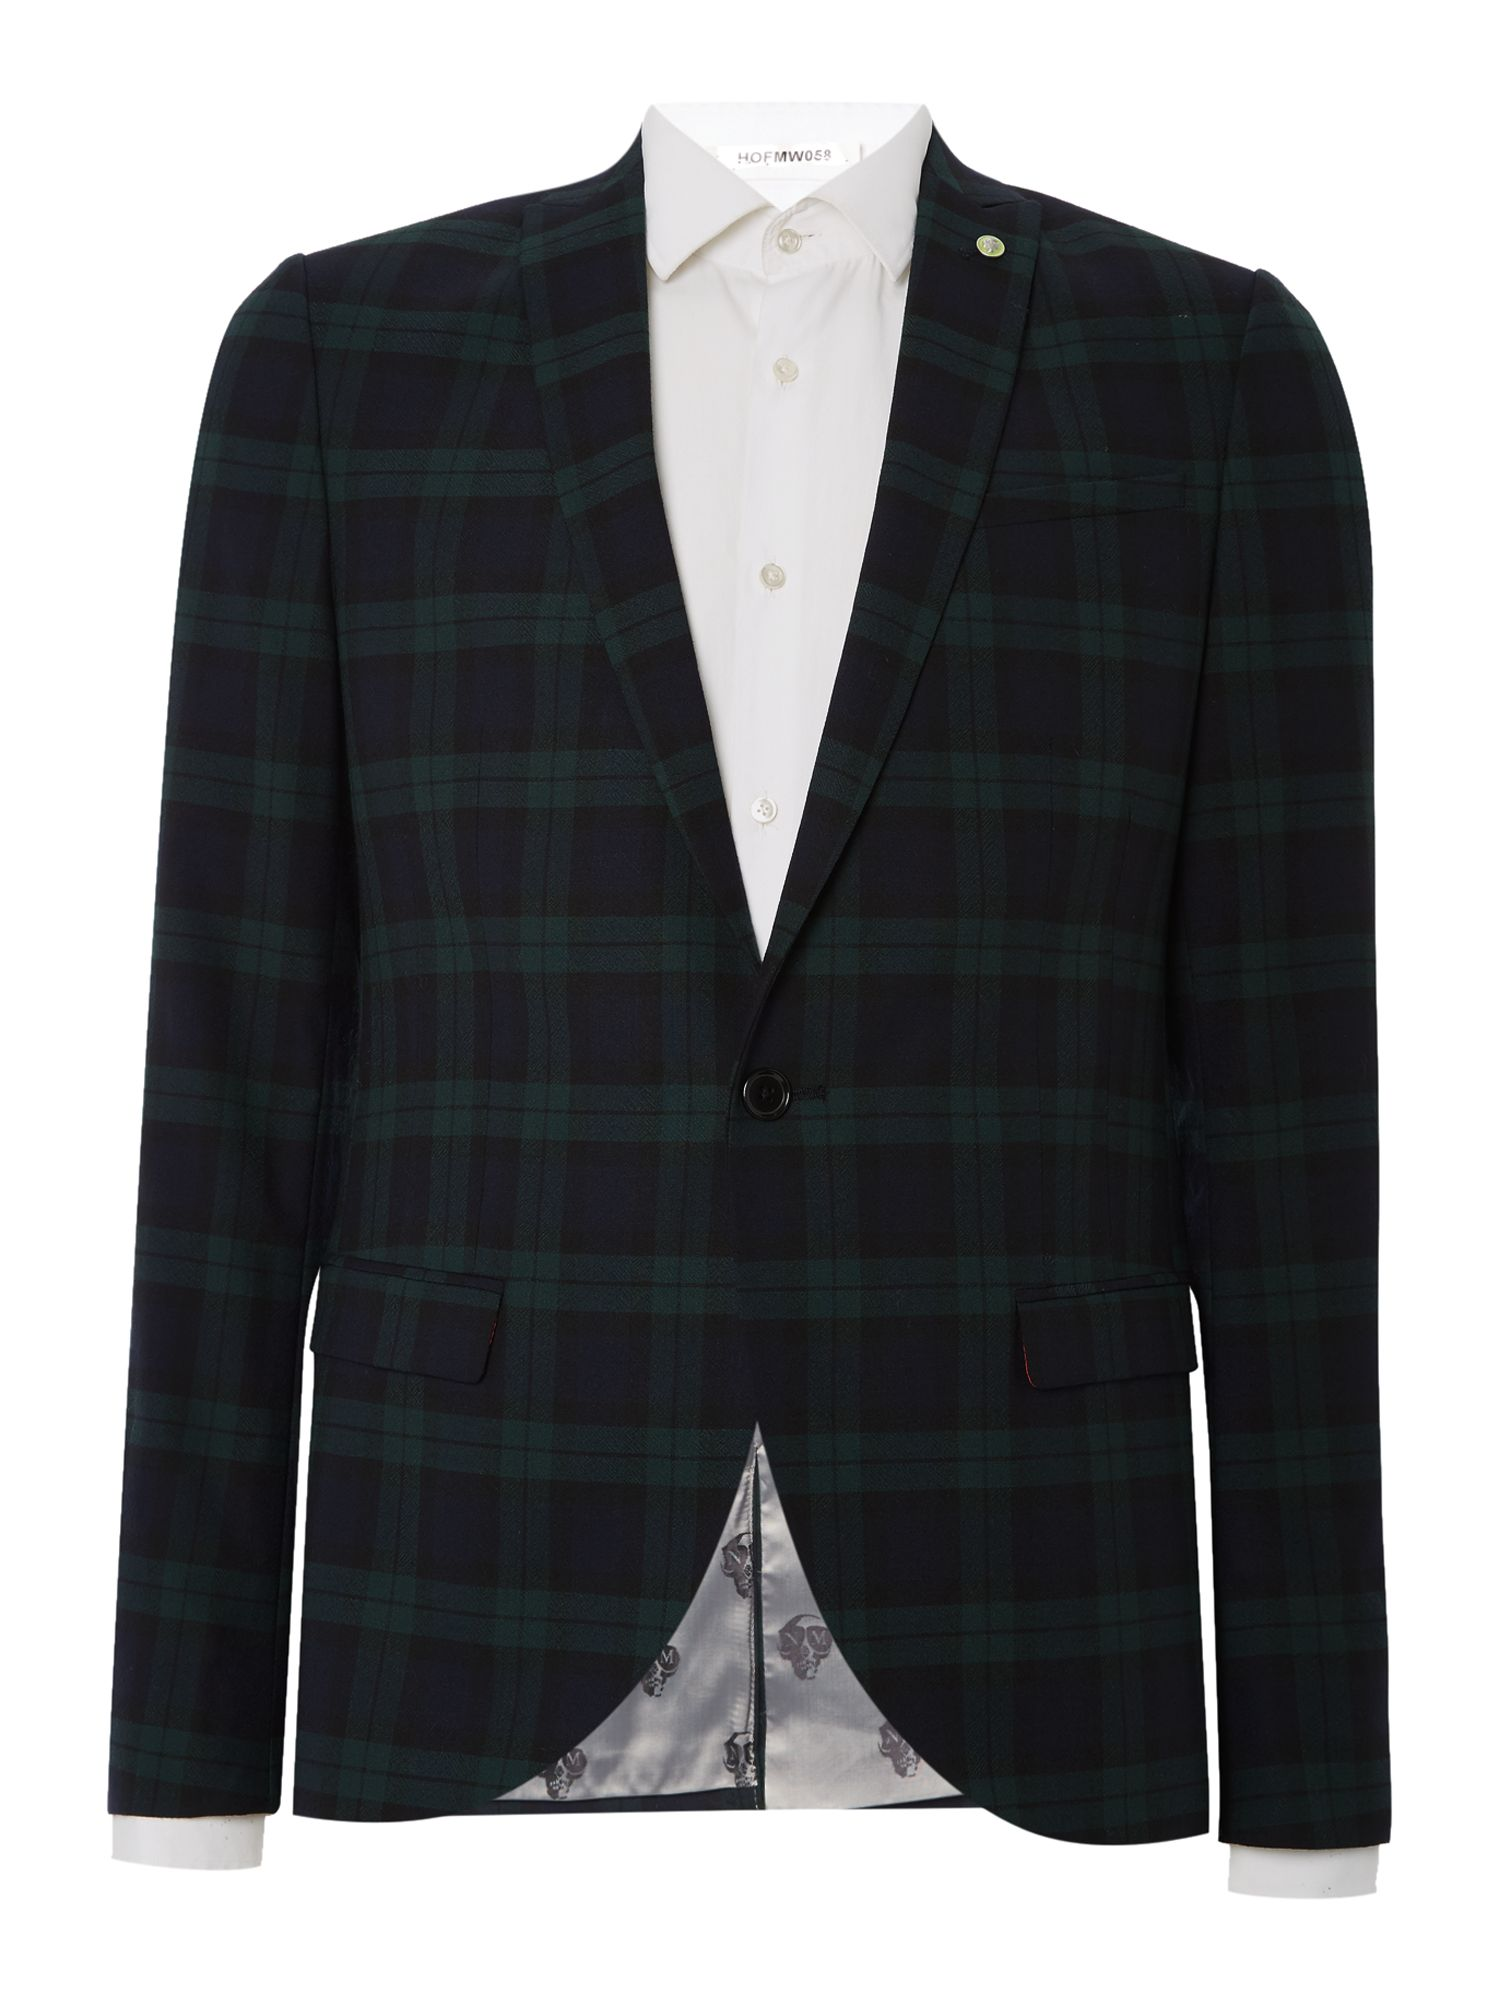 Noose and Monkey Men's Noose and Monkey Tartan Check Suit Jacket, Green